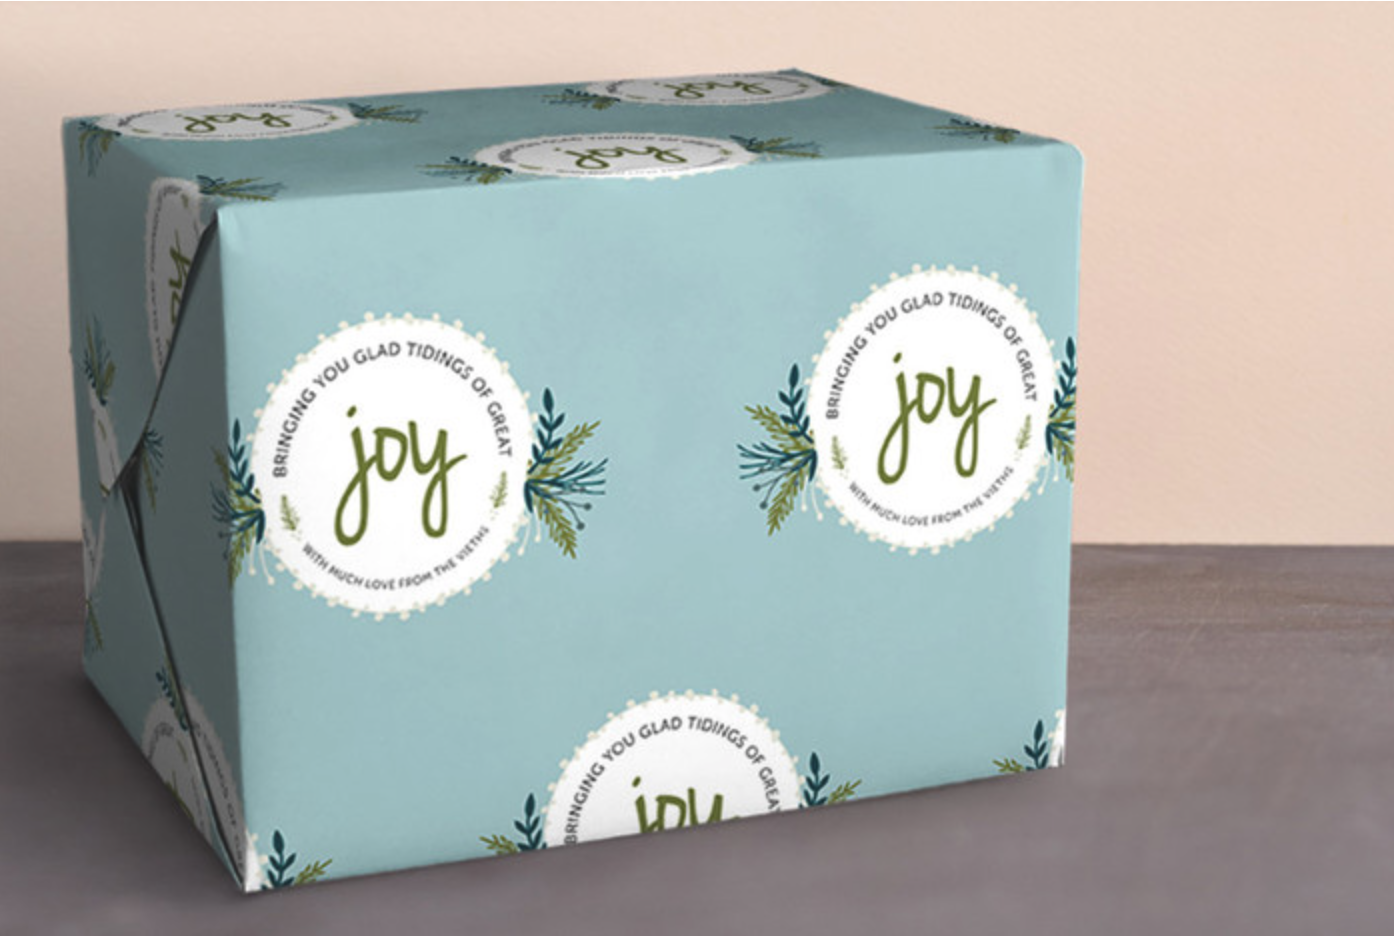 Wrapped with Joy Personalized Wrapping Paper in Frost